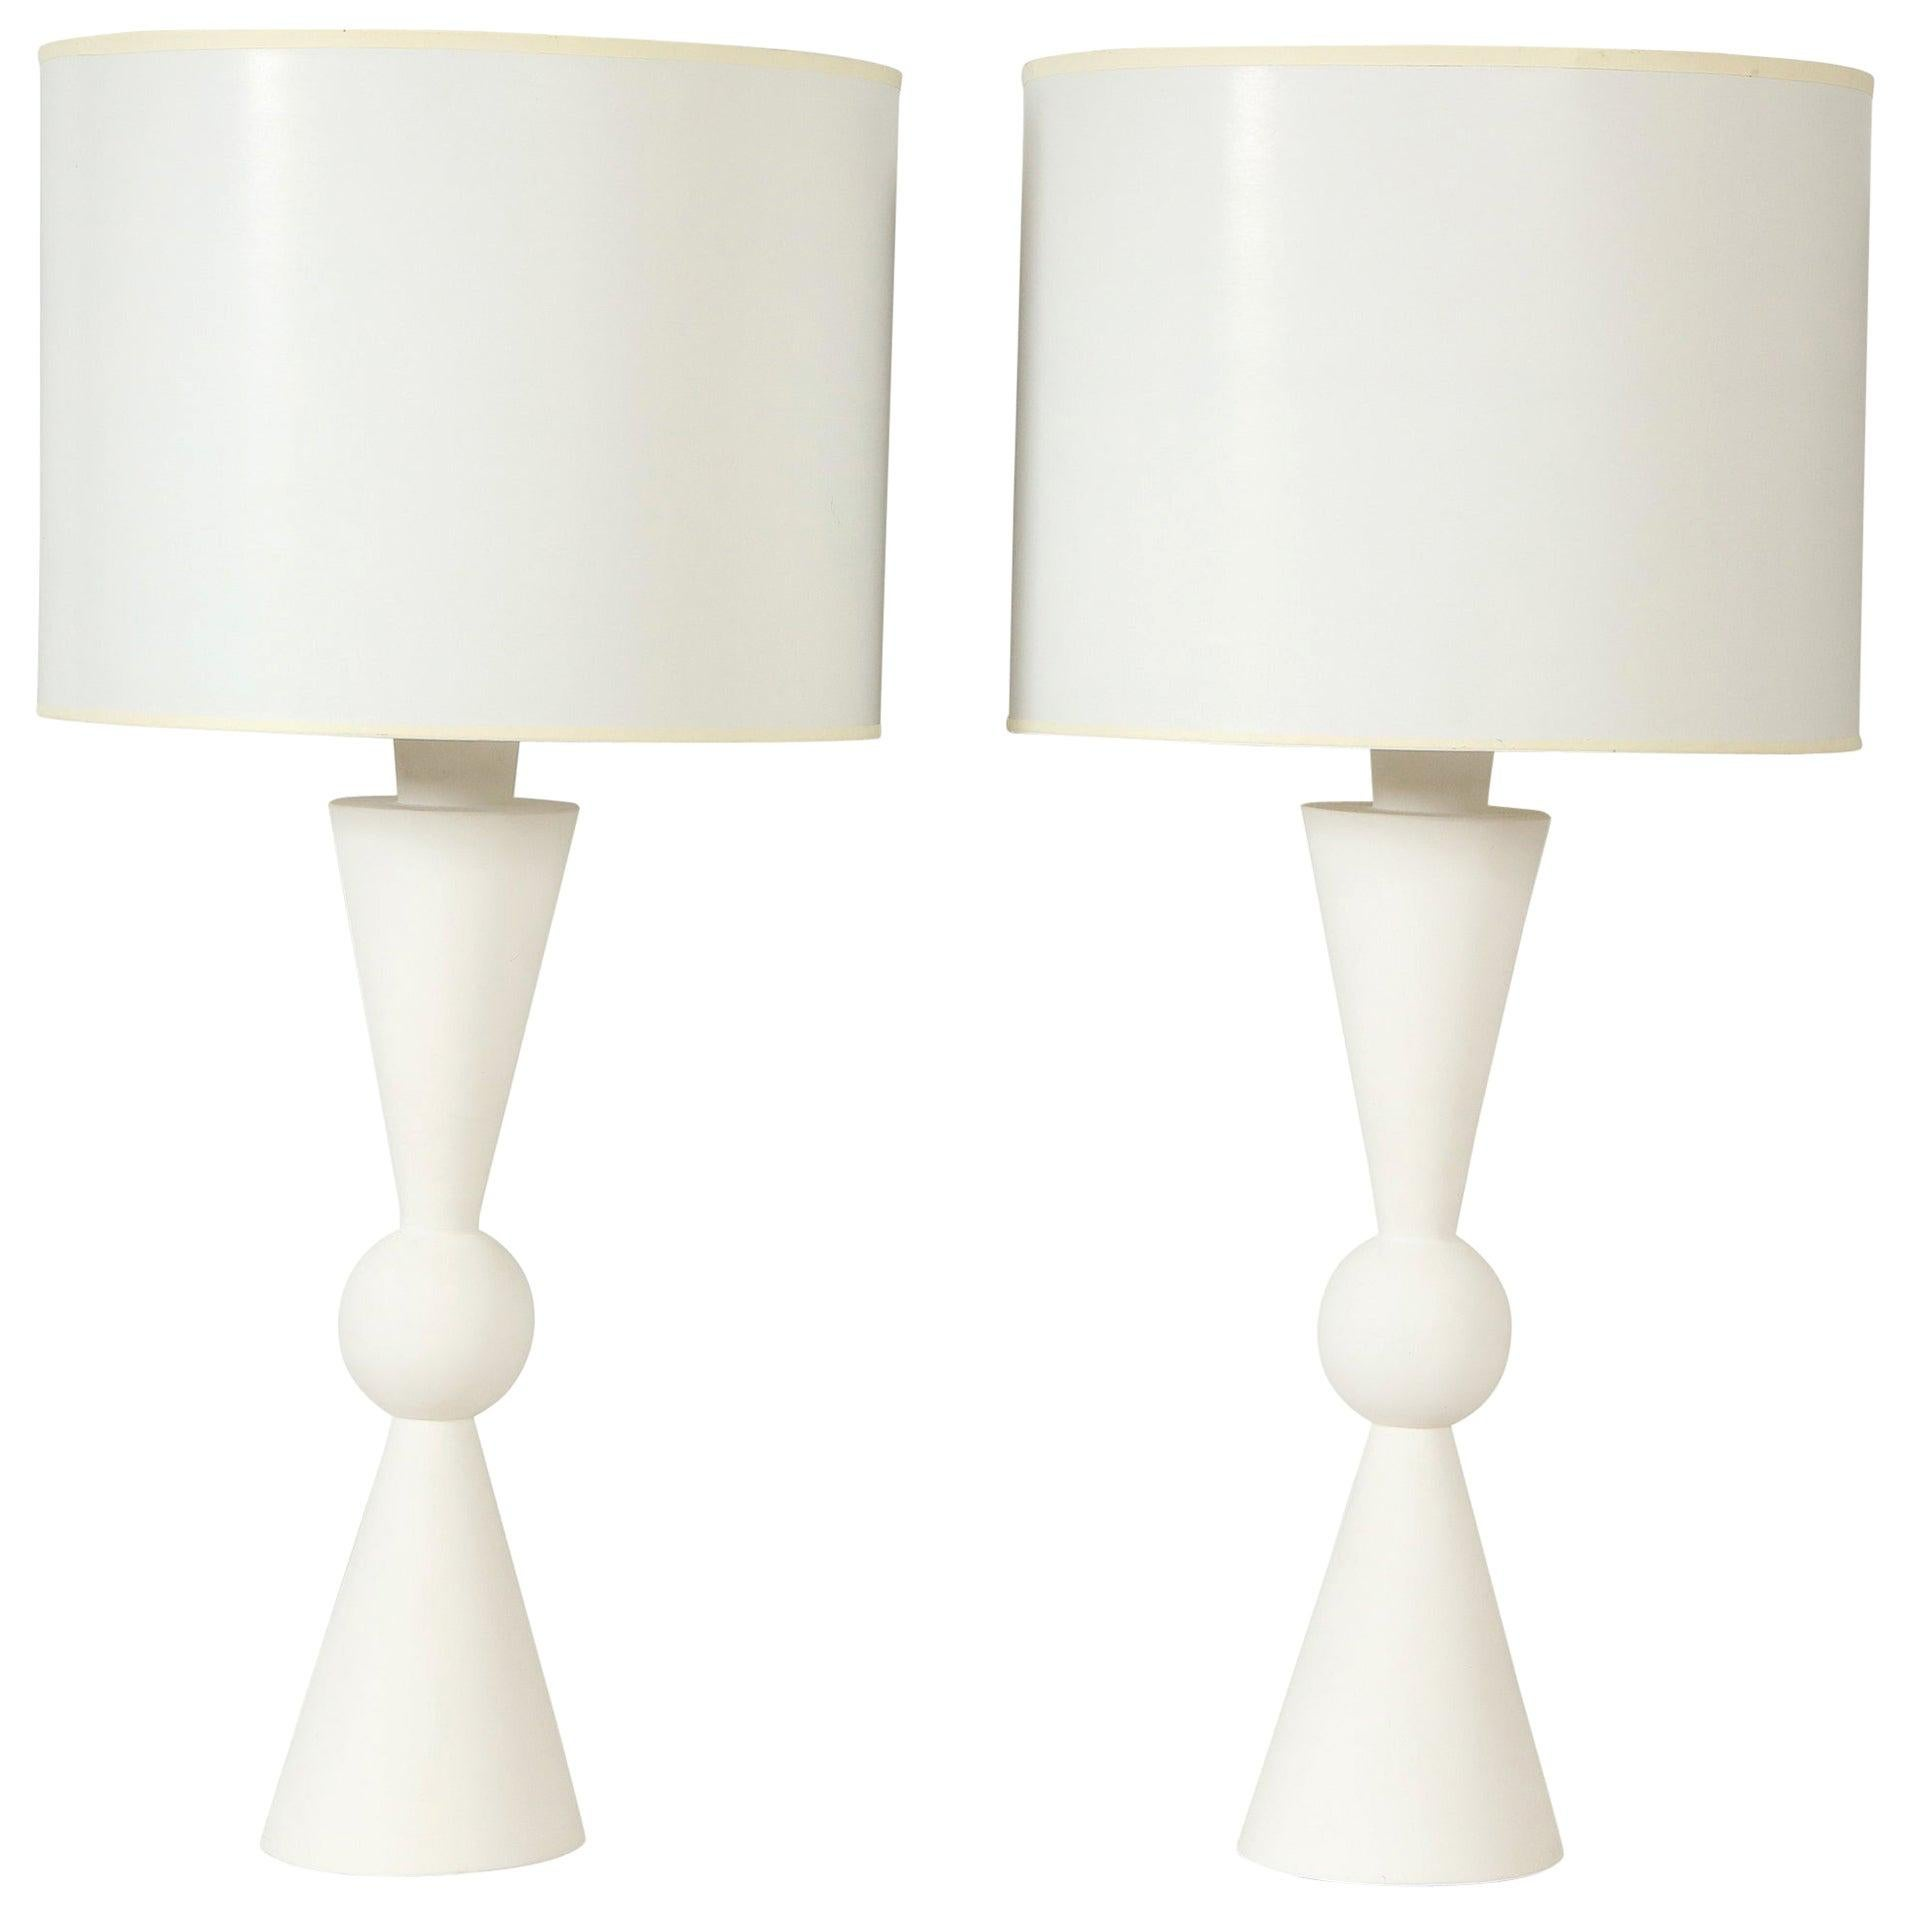 Pair of Hand Crafted Custom Plaster Arlo Table Lamps